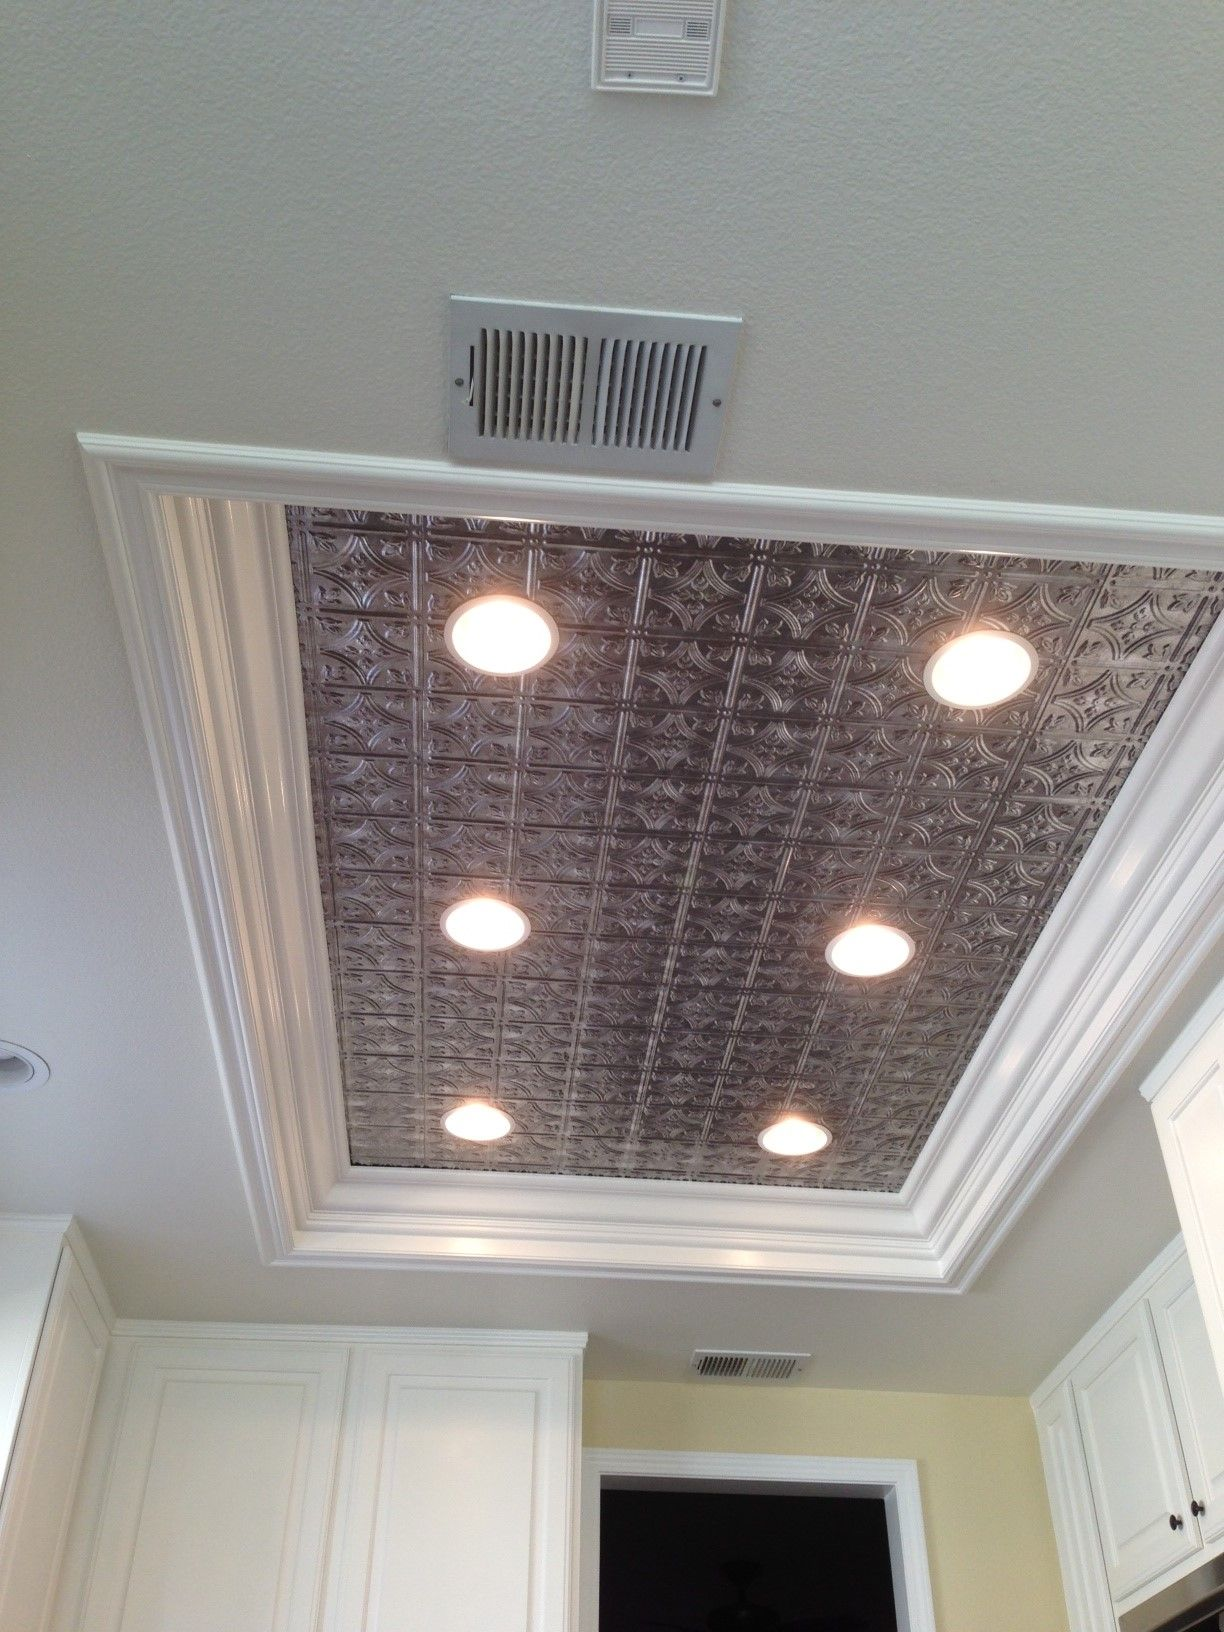 For Kitchen Ceilings Remodel Flourescent Light Box In Kitchen We Also Replaced The